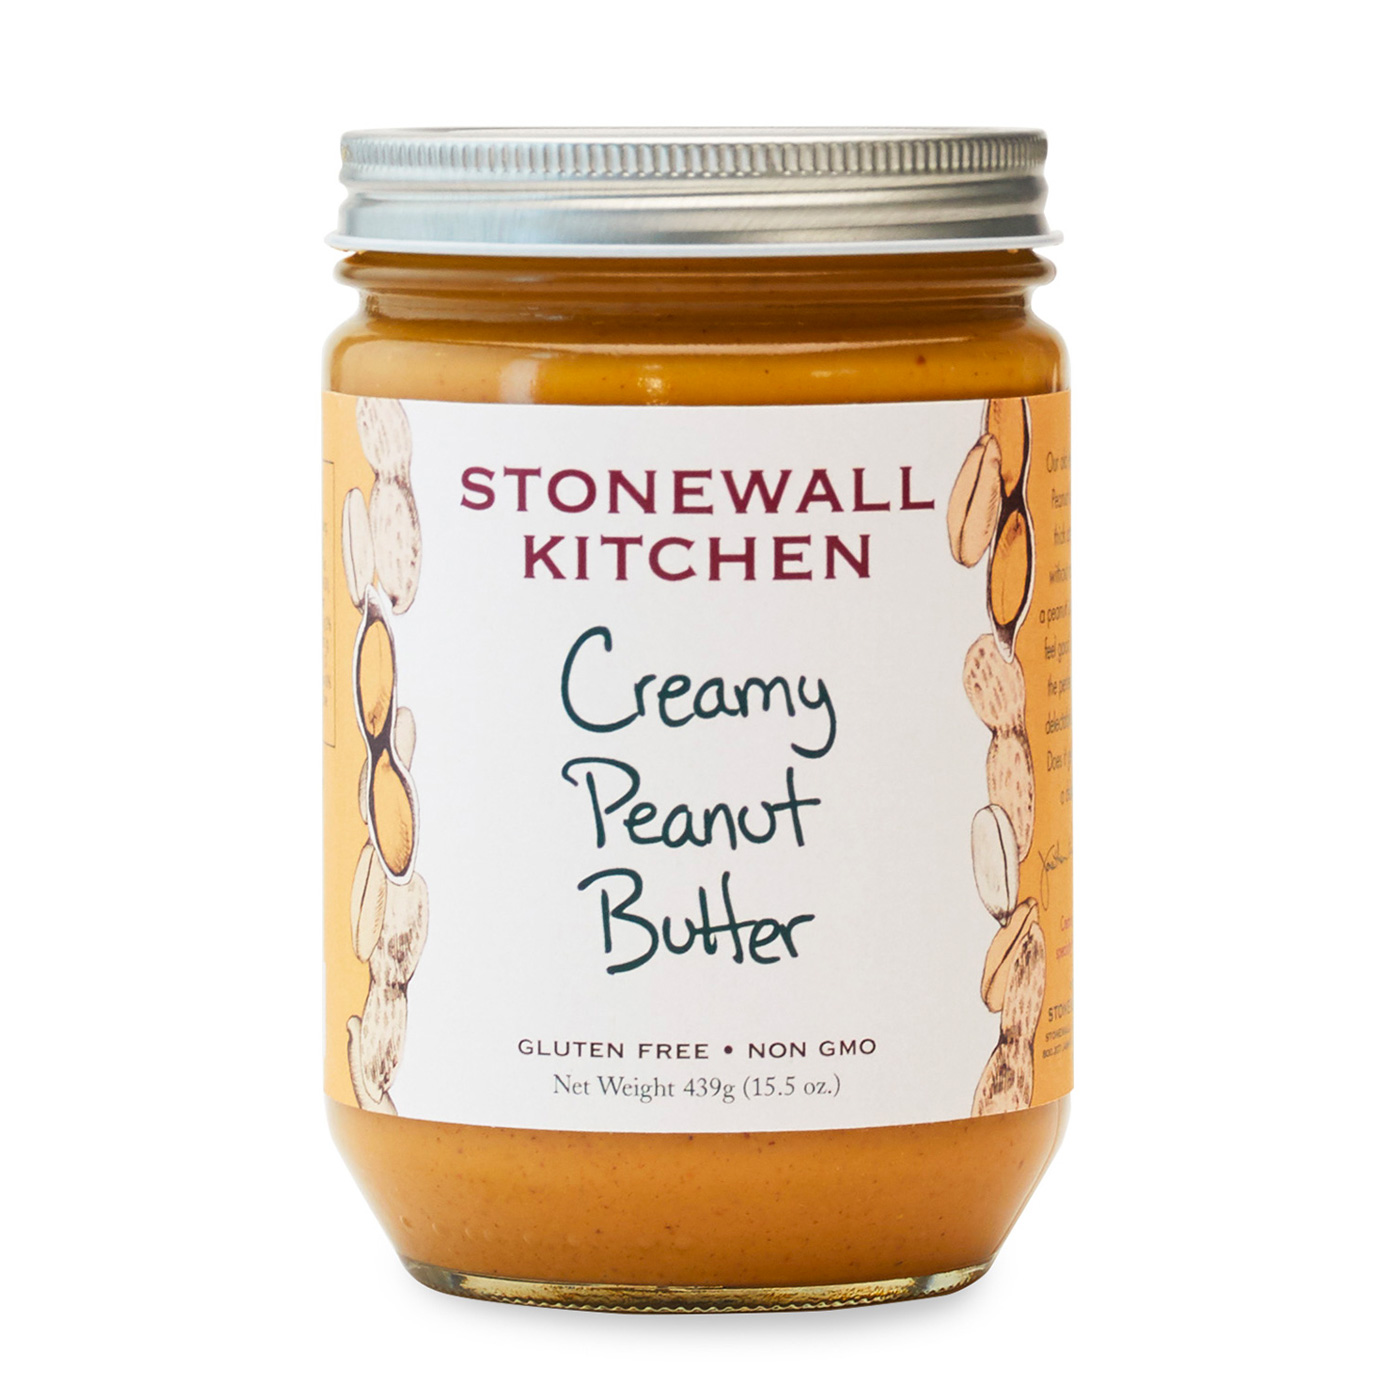 stonewall kitchen com ikea designs creamy peanut butter jams preserves and spreads